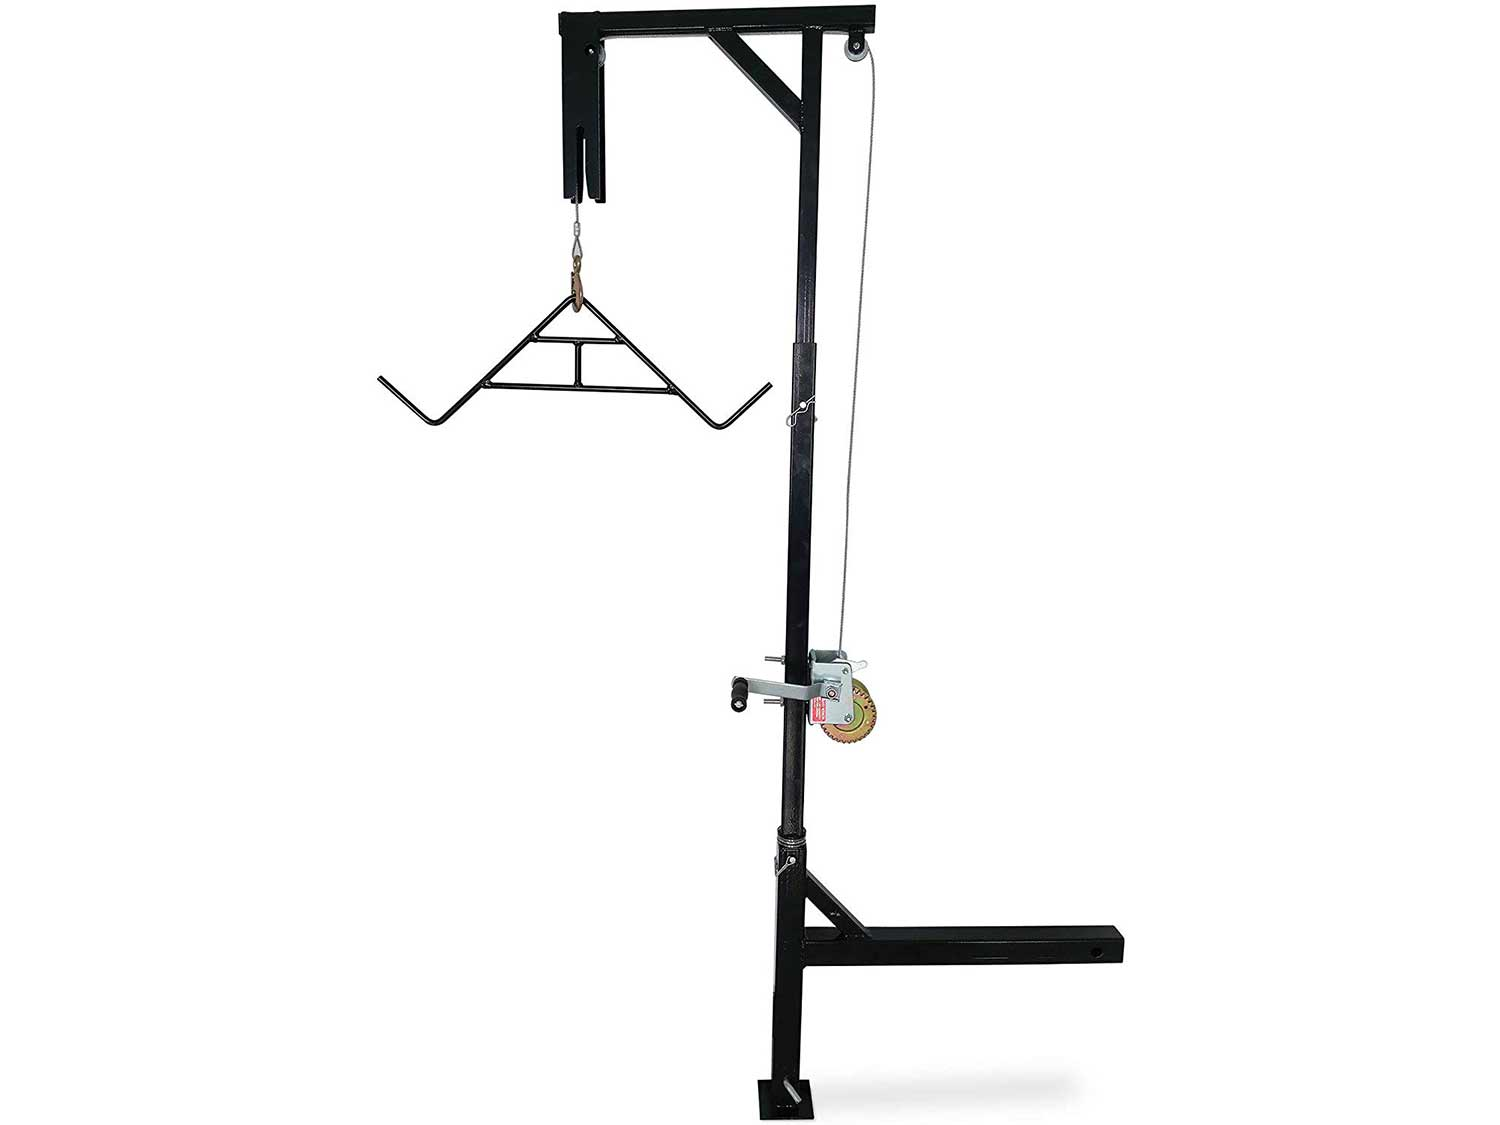 HME Products Truck Hitch Game Hoist